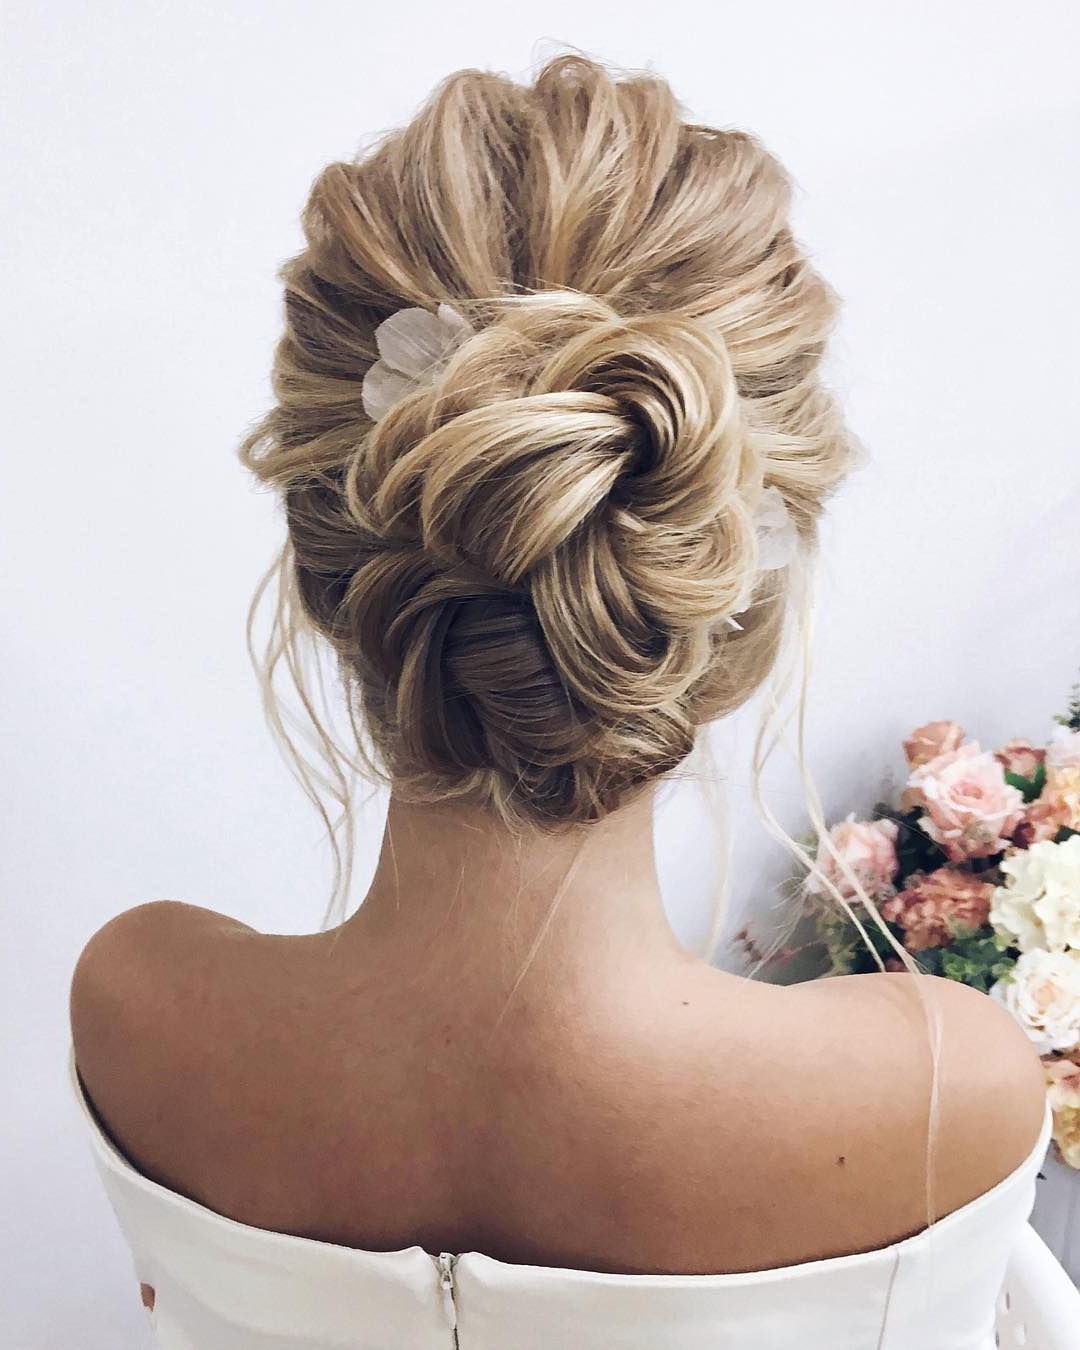 55 Amazing Updo Hairstyles With The Wow Factor (View 2 of 20)